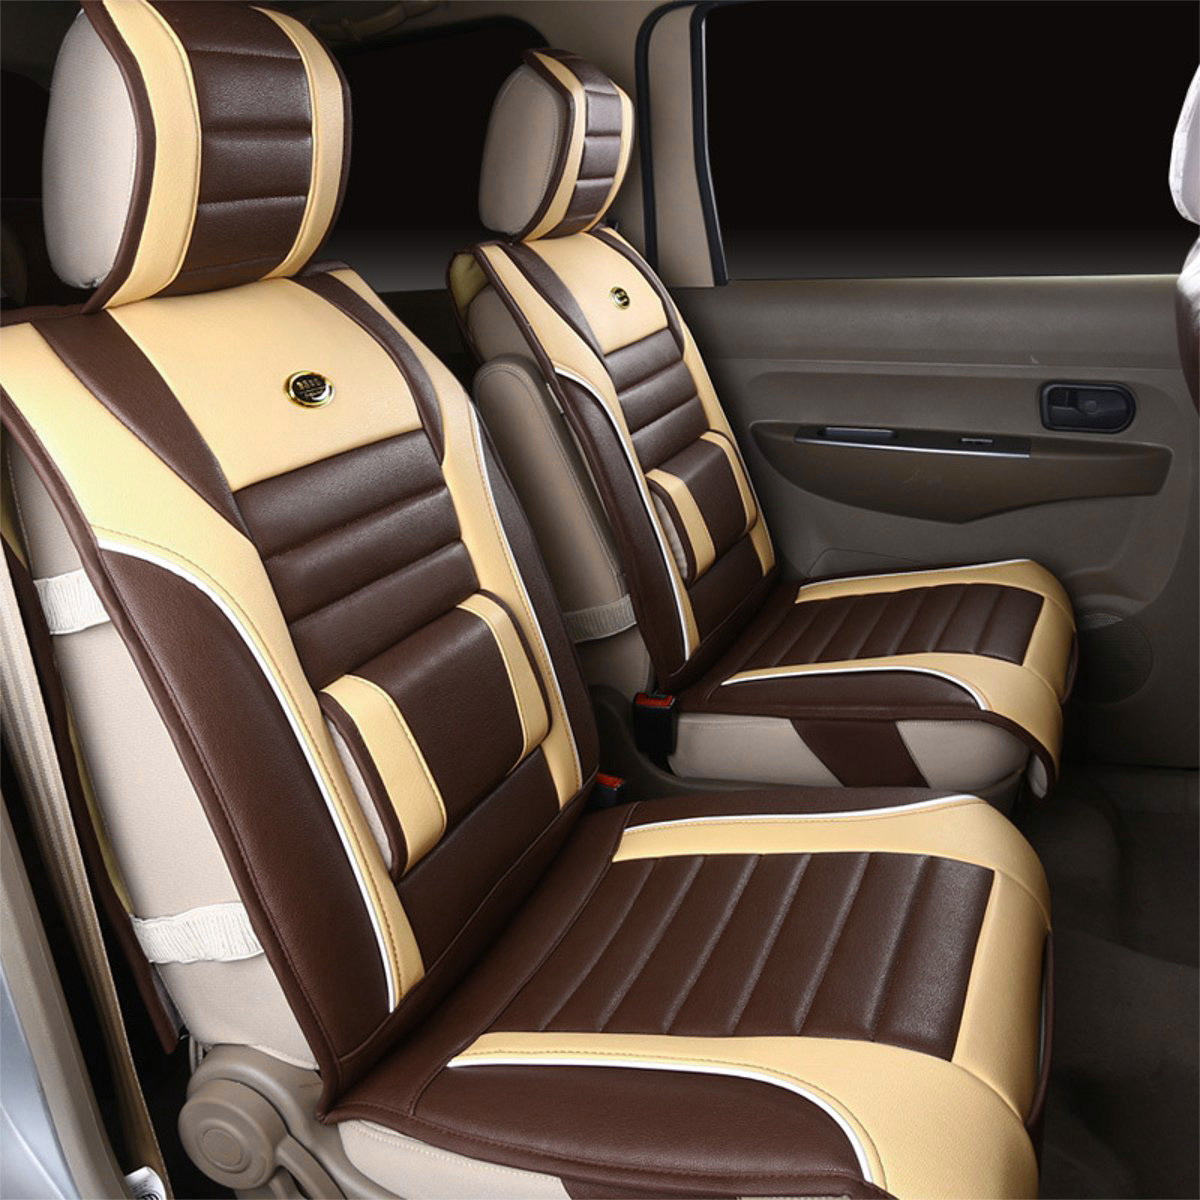 Luxury Full Seat PU Leather Car Van Cushion Cover Breathable Surround Pad Car Seat Cover Seat Protector Mat Interior Accessories